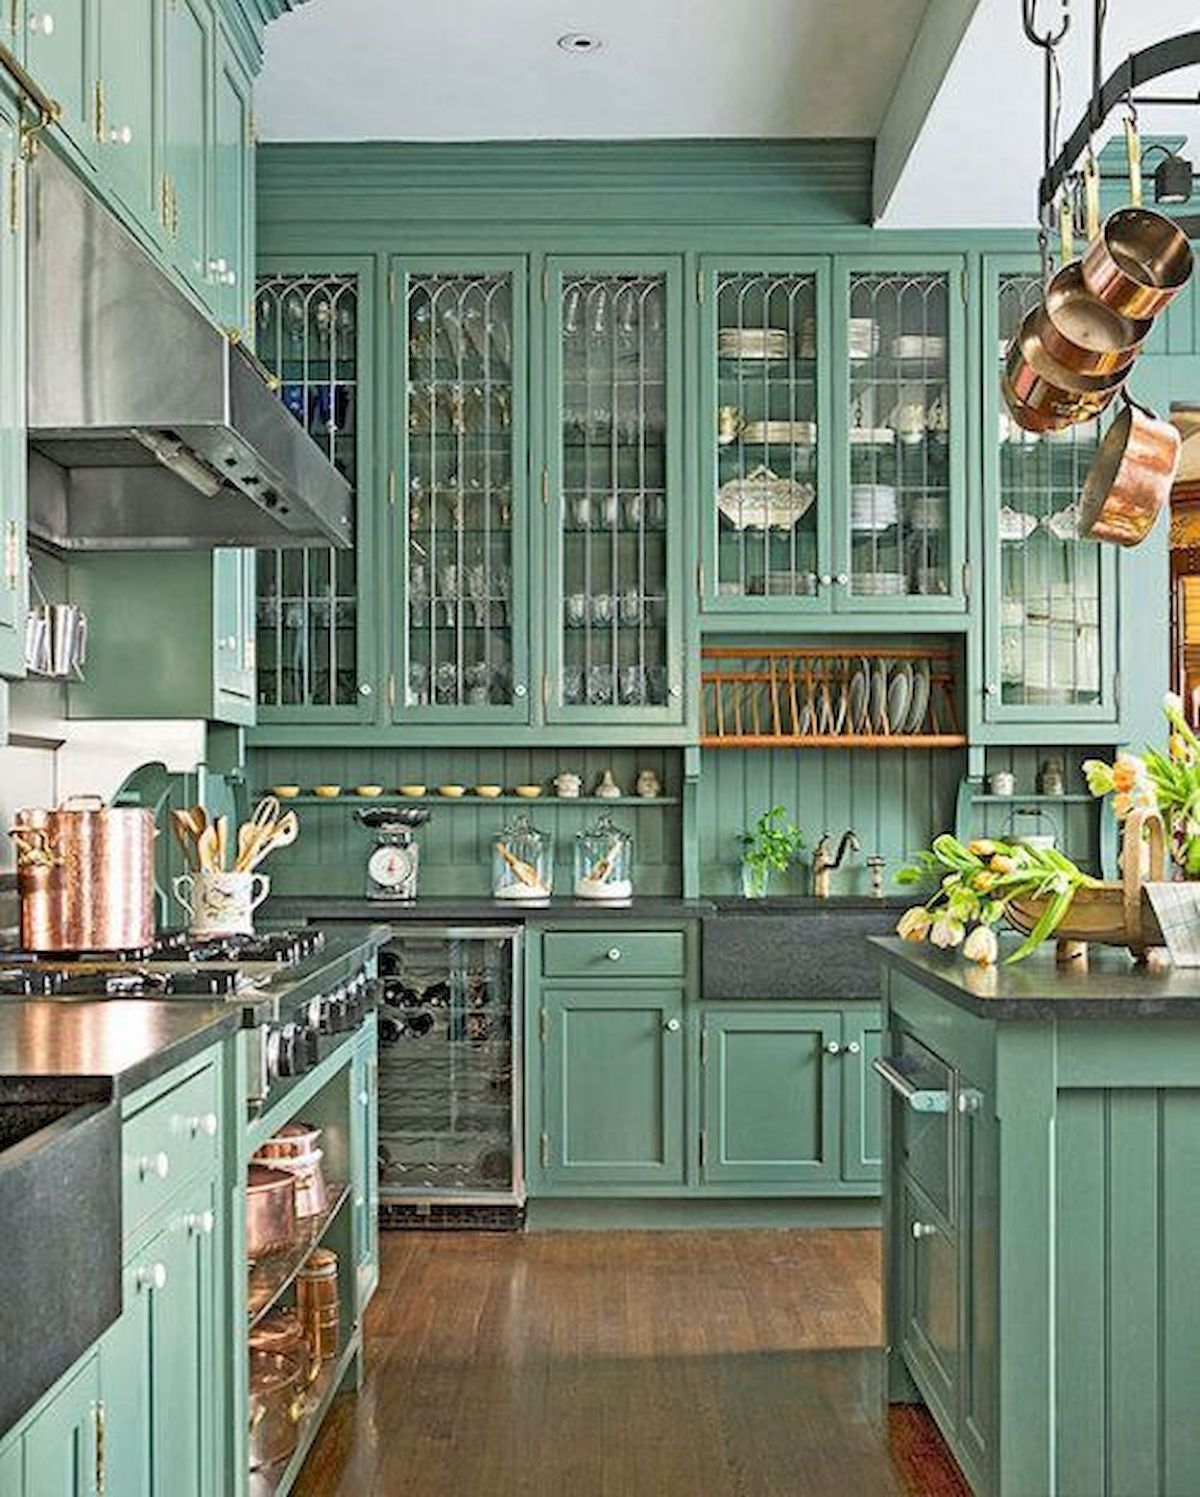 Upper Kitchen Cabinet Decorations: 40 Awesome Sage Greens Kitchen Cabinets Decorating